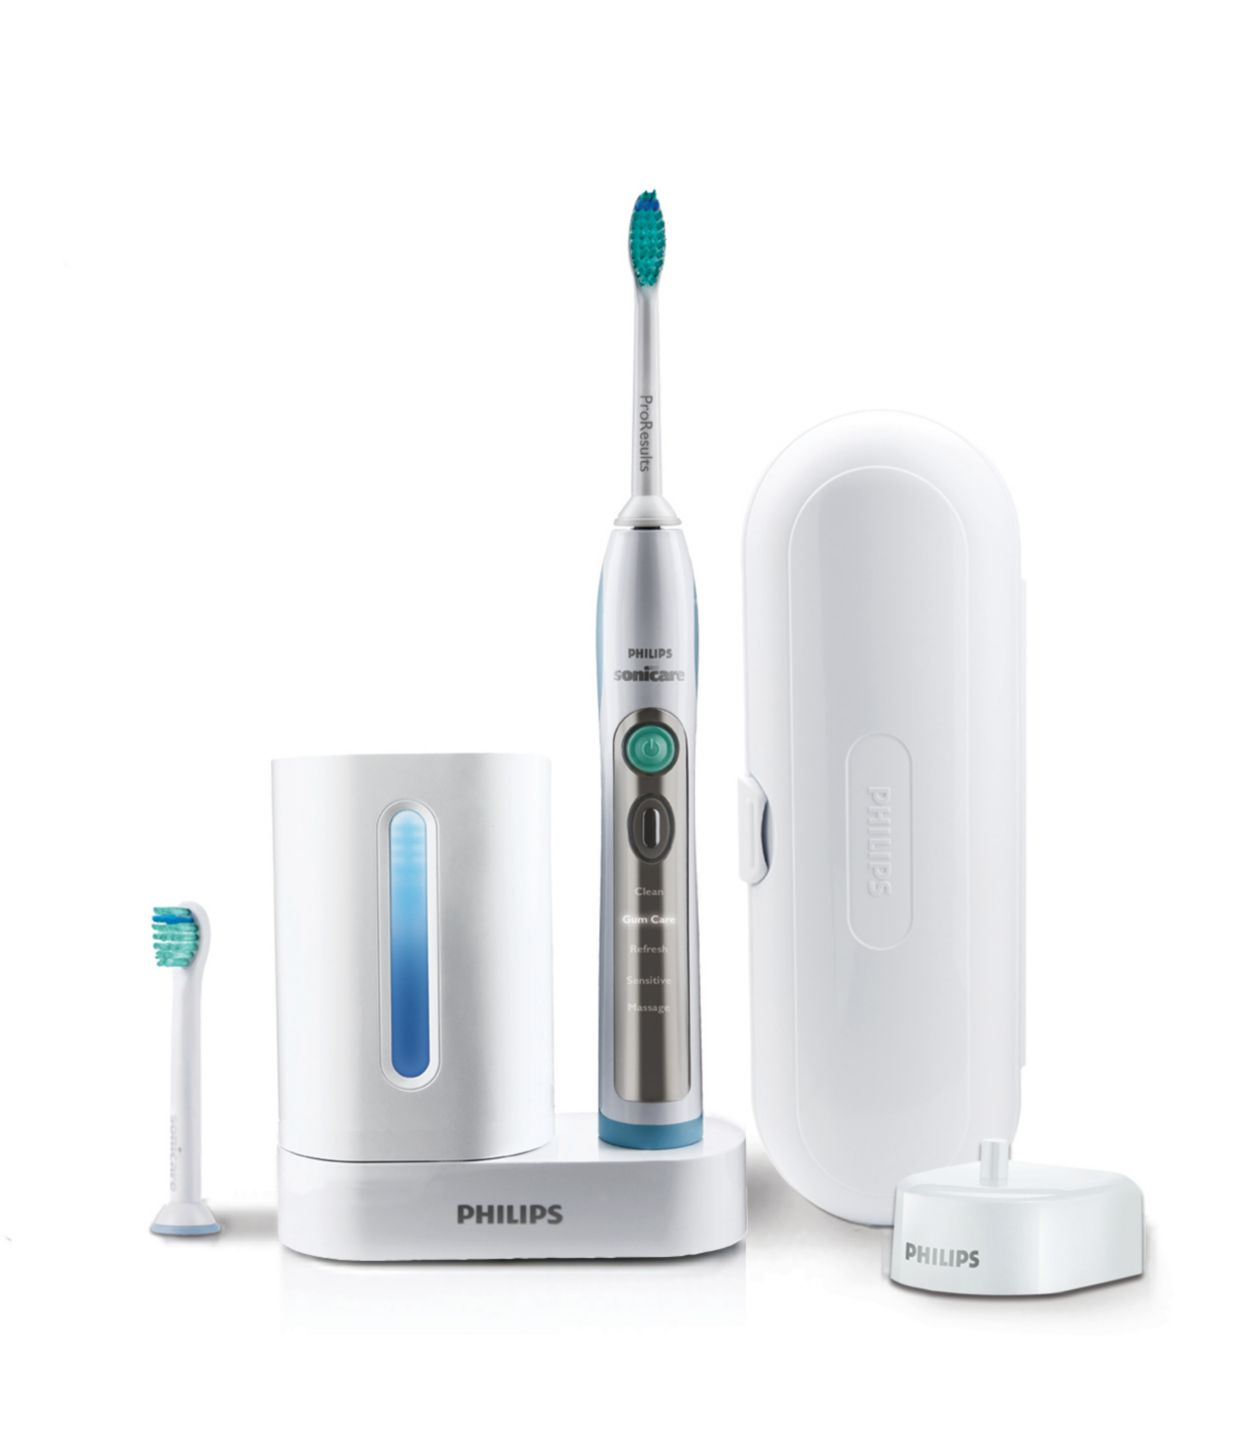 Philips Sonicare FlexCare+ rechargeable electric toothbrush,Standard Packaging Philips Sonicare 2 Series Rechargeable Toothbrush Premium Bundle HX for Clean and Massage (2 Quadpacer Handles + 3 Brush Heads (2 ProResults Plaque Control + 1 DiamondClean) + 2 Charger + 2 Case).